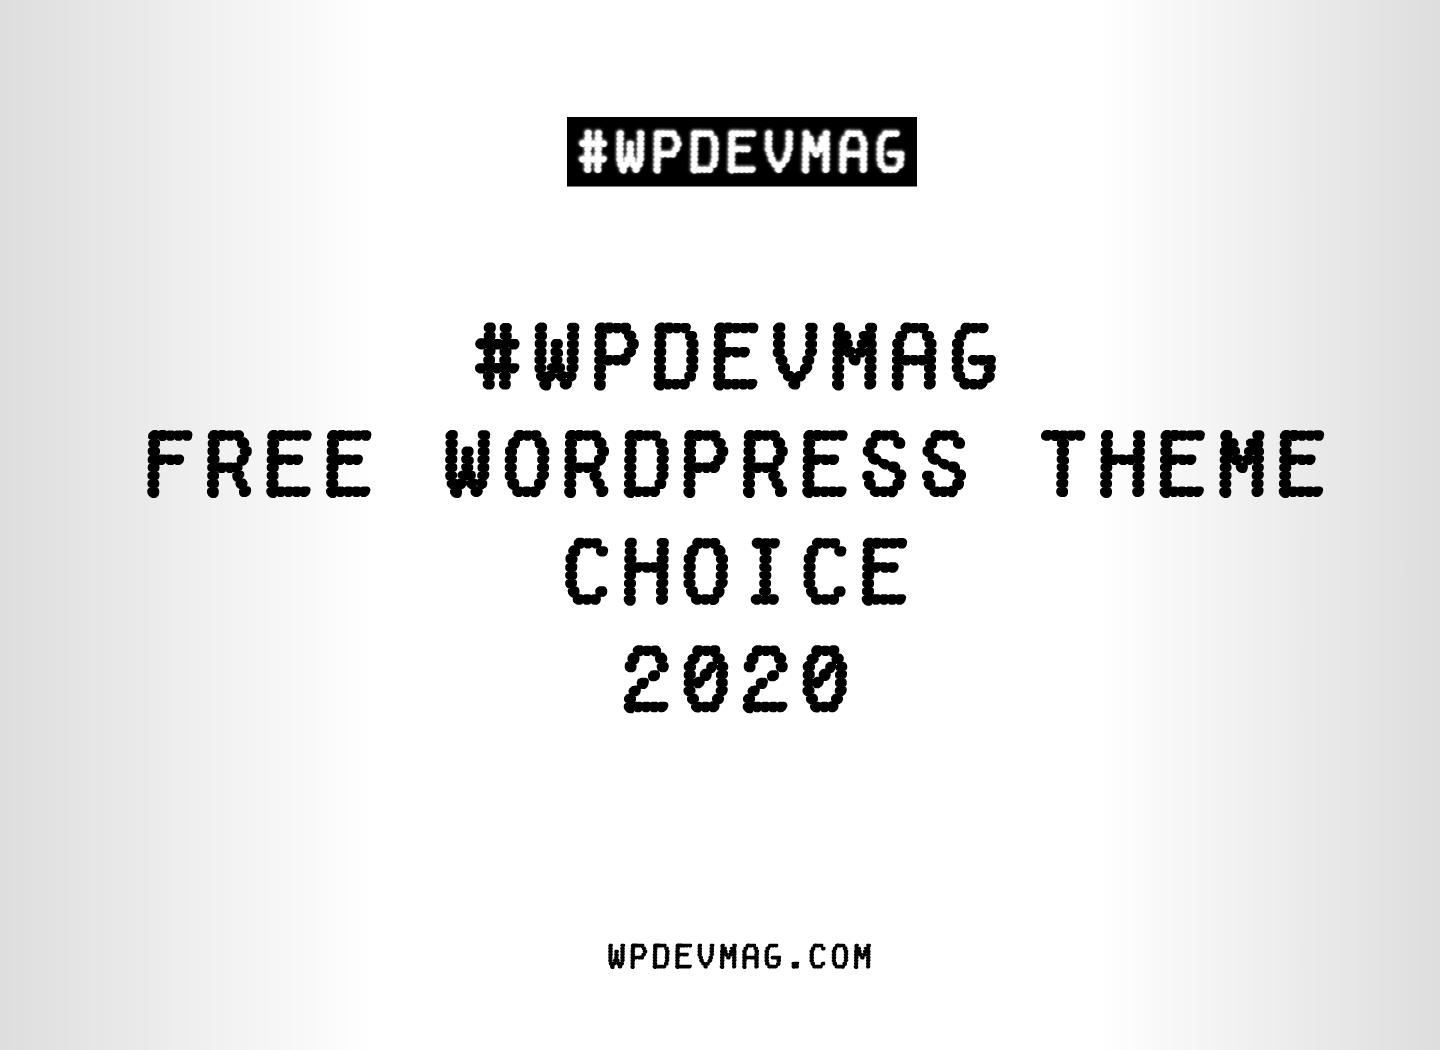 #WPDEVMAG Free WordPress Theme Choice 2020